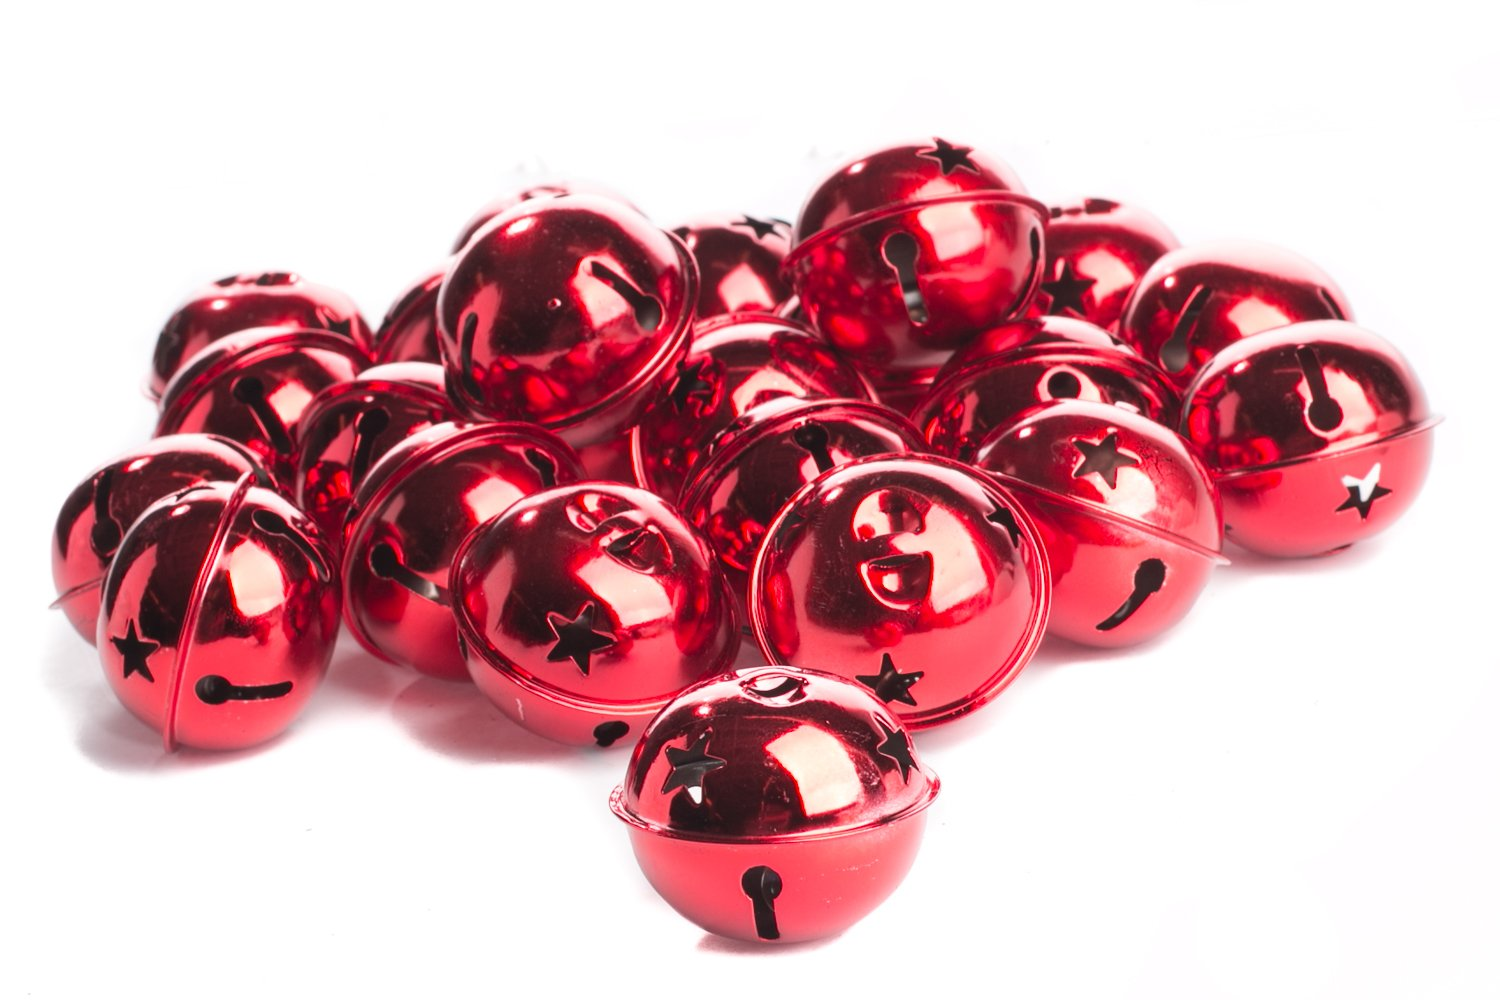 Factory Direct Craft Package of 24 Shiny Red 50mm Christmas Jingle Bells with Star Cutouts by Factory Direct Craft